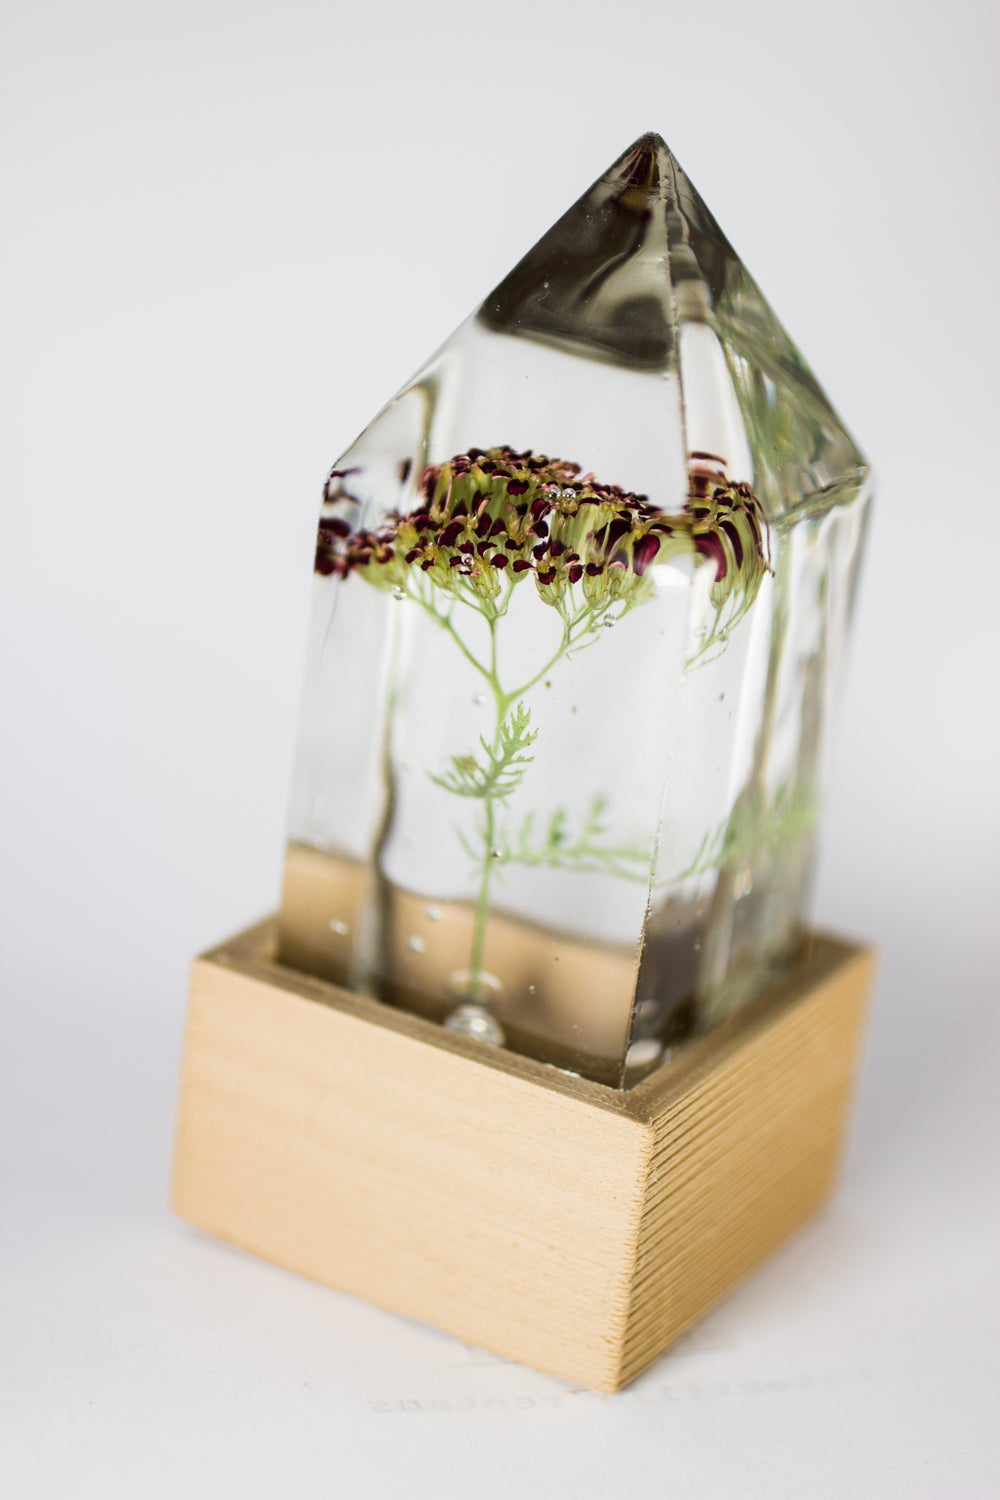 Image of Red Yarrow (Achillea millefolium) - Floral Prism Desk Lamp #2